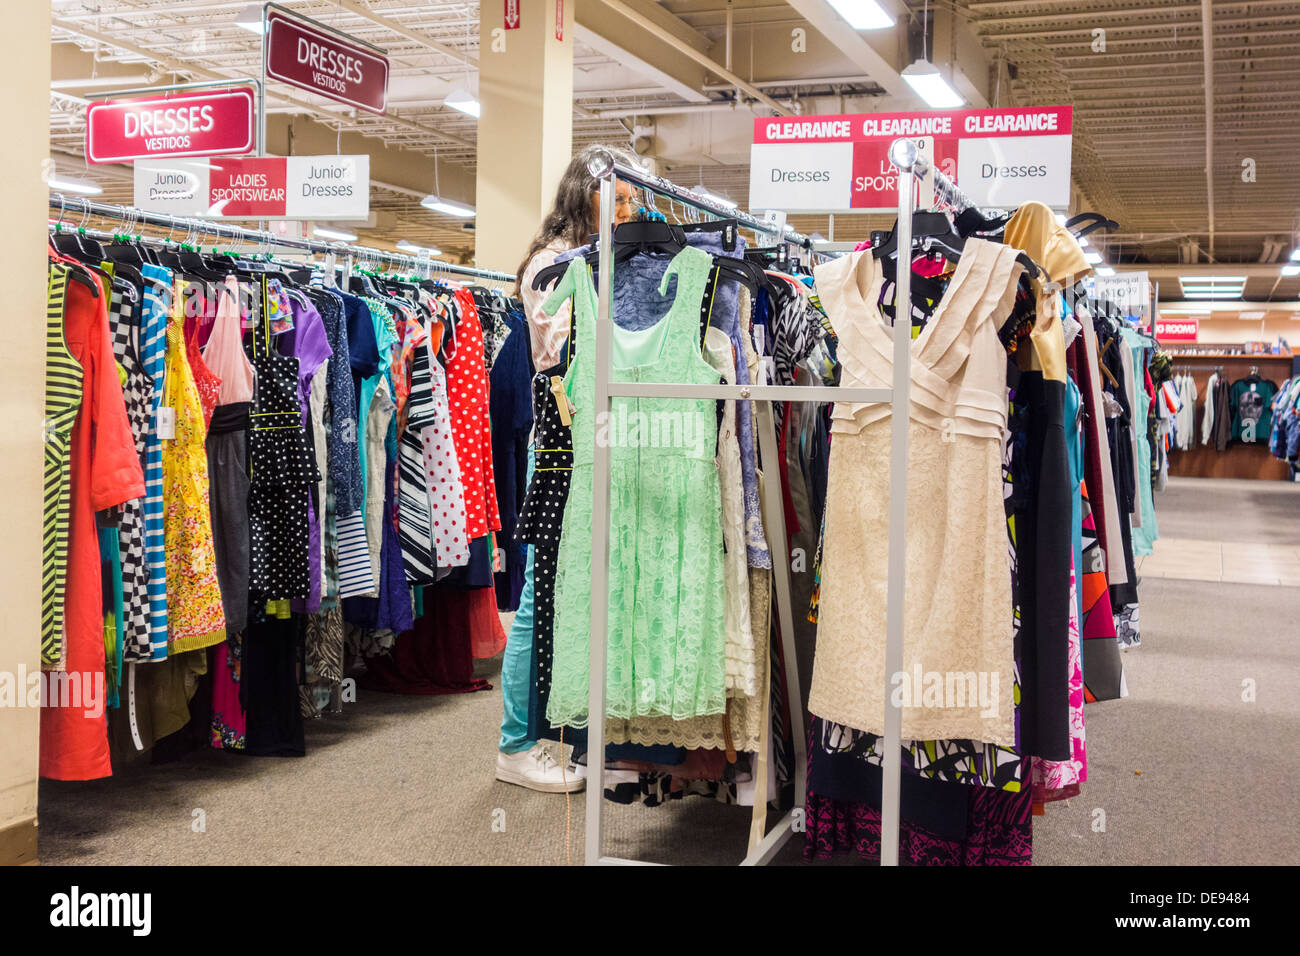 A Woman Browses A Rack Of Dresses On Sale In A Discount